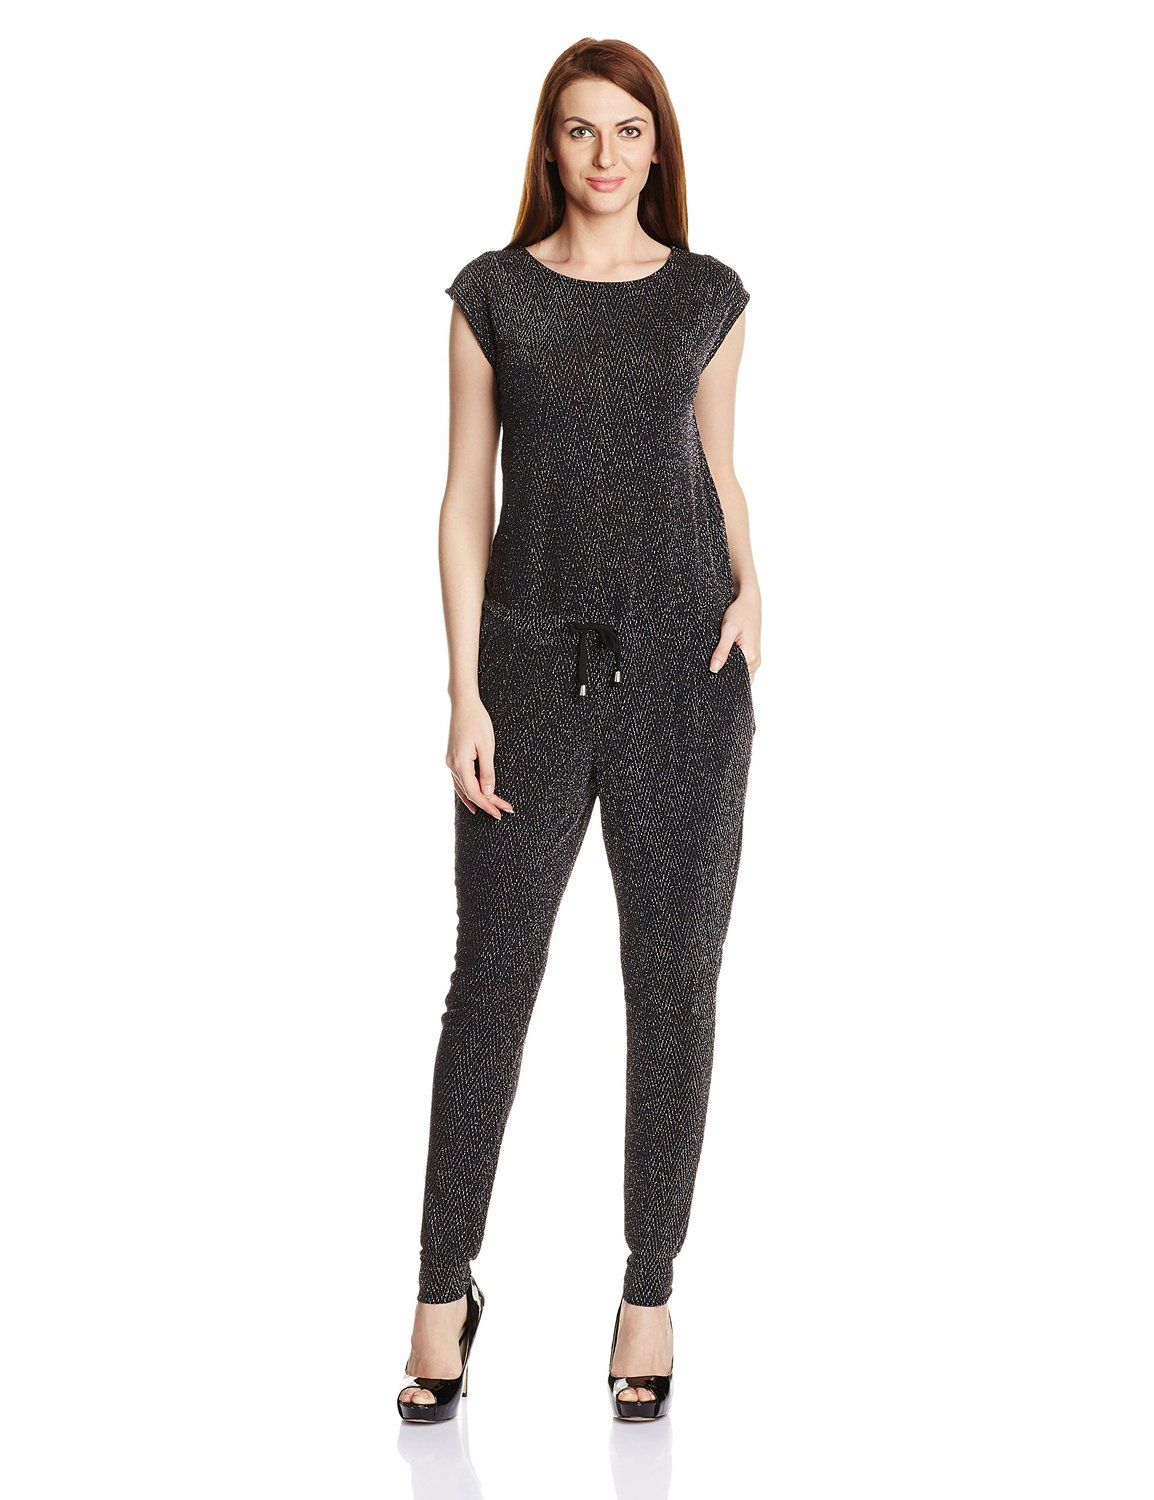 523c43292bc8 Vero Moda Women's Jumpsuit: Amazon.in: Clothing & Accessories ...